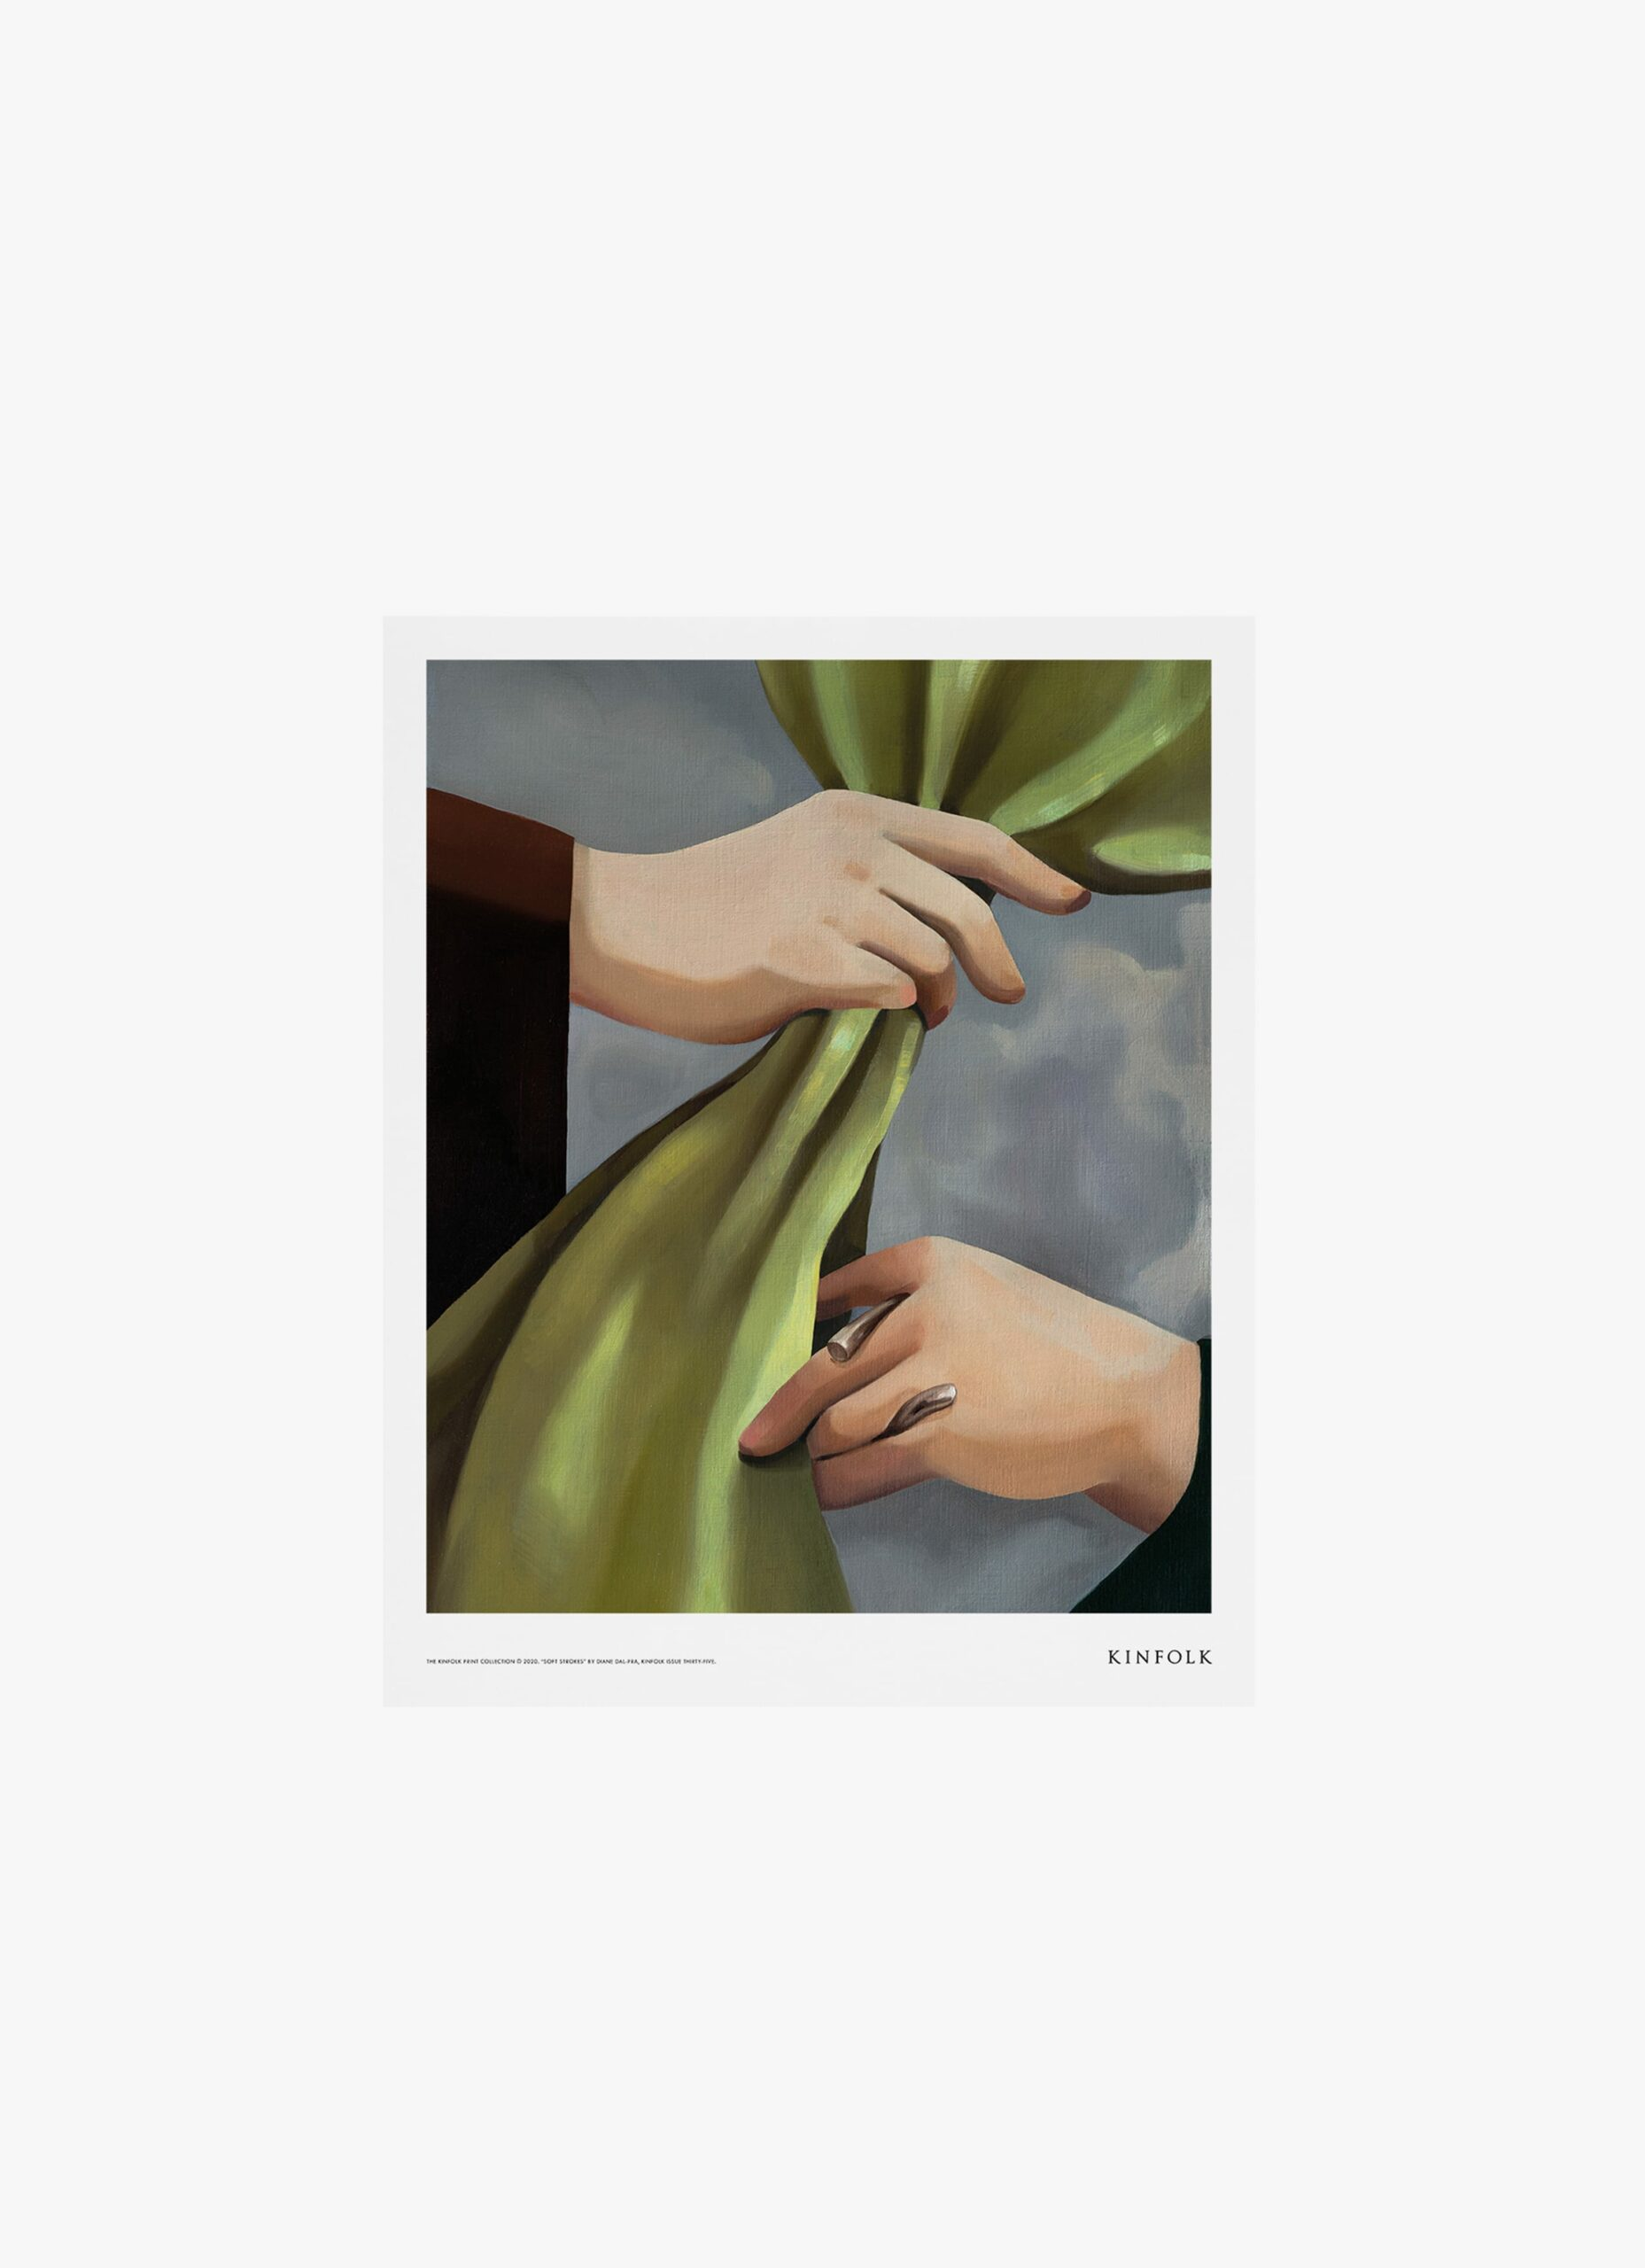 Alium - Kinfolk Print Collection - Diana Dal-Pra - Soft Strokes 02 - 40x50cm